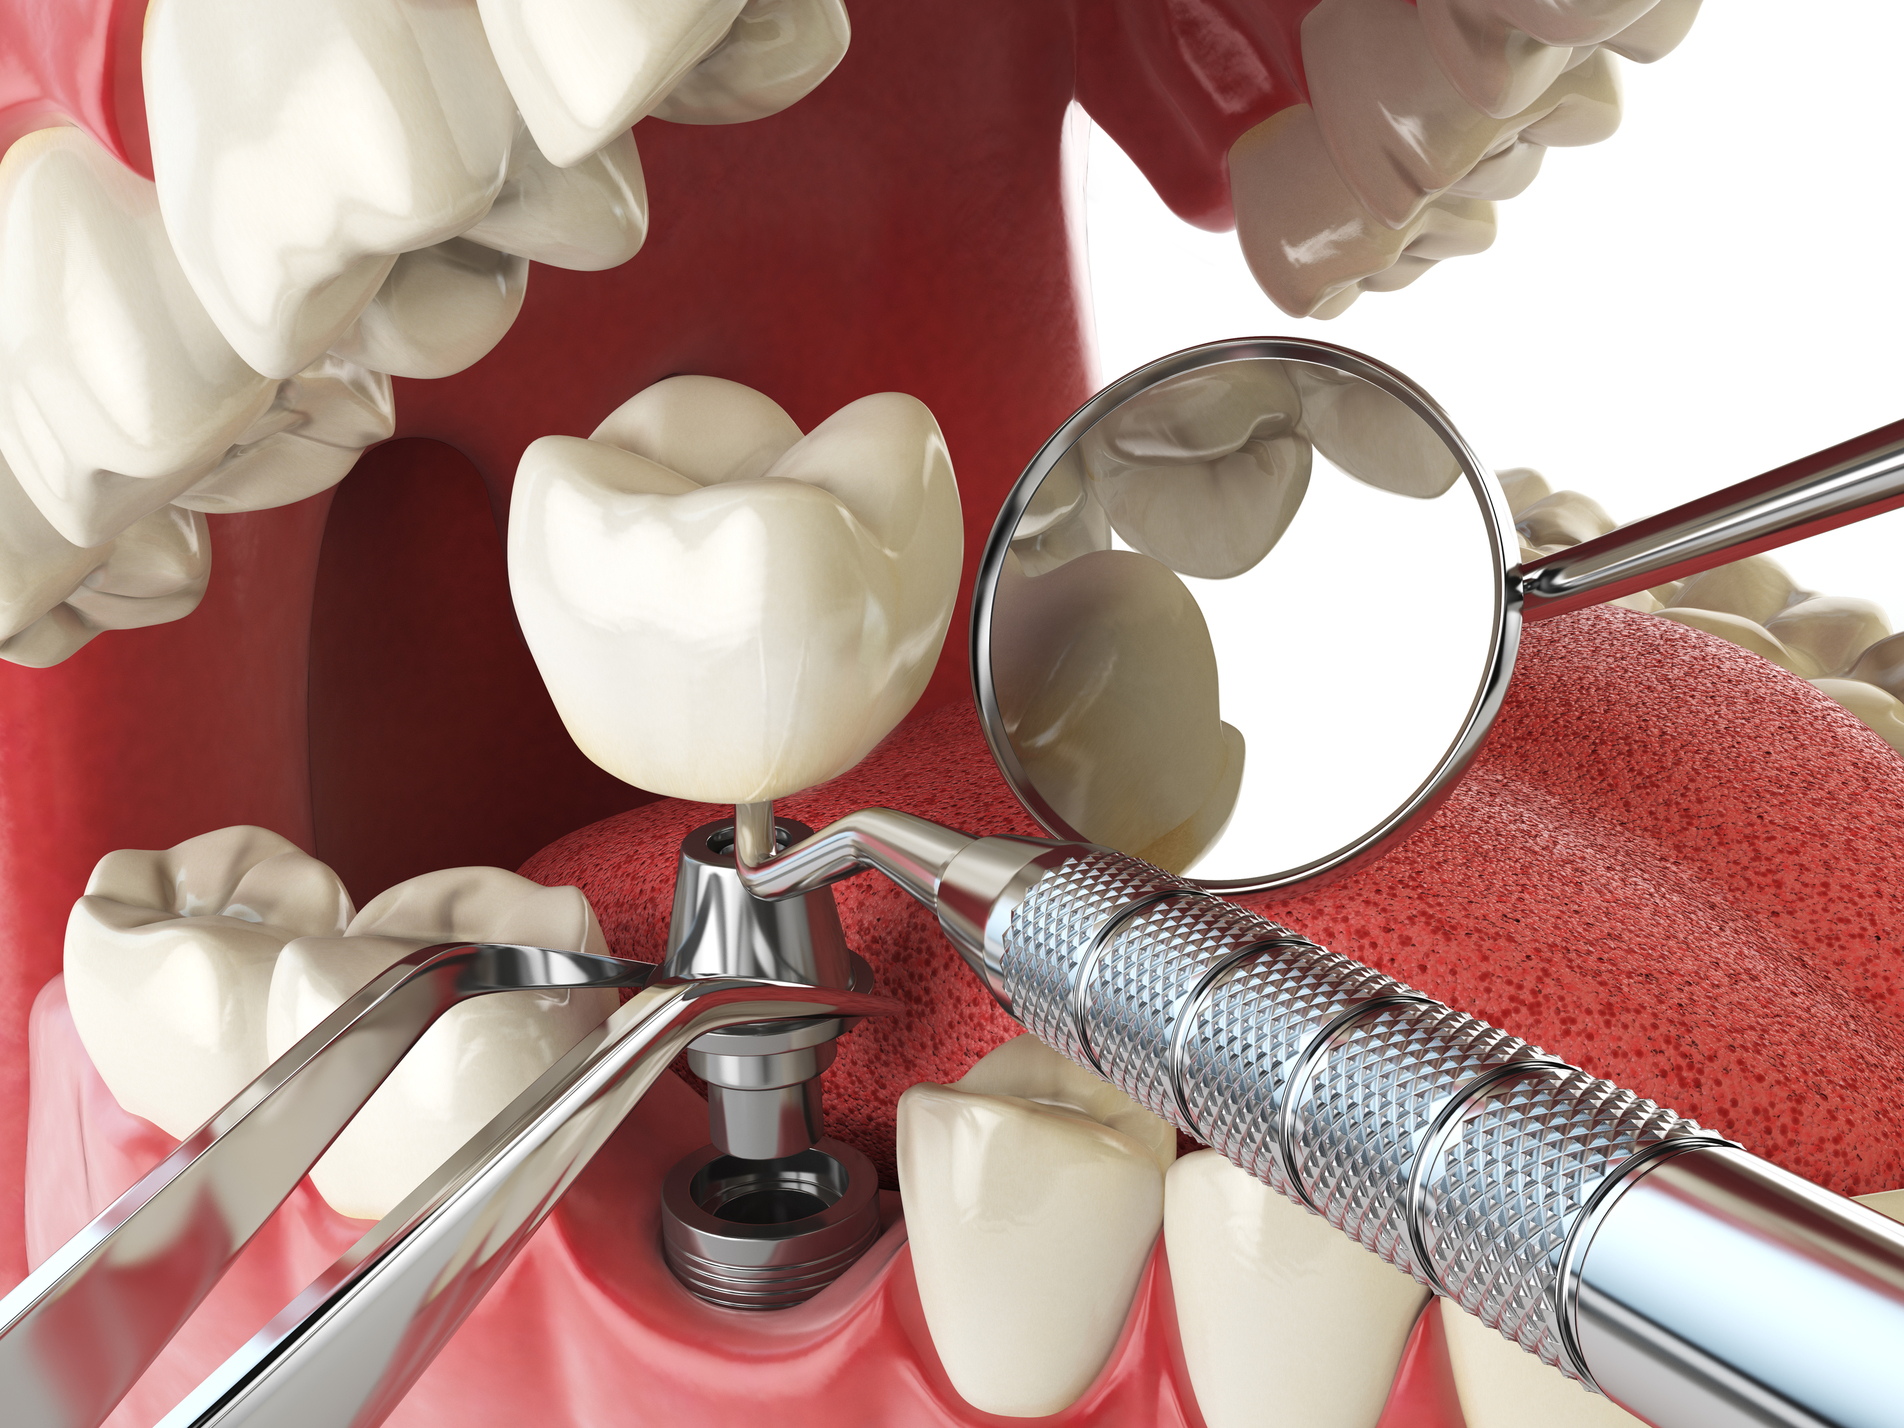 Dental implants in Harley Street: A Permanent Treatment for Tooth Loss